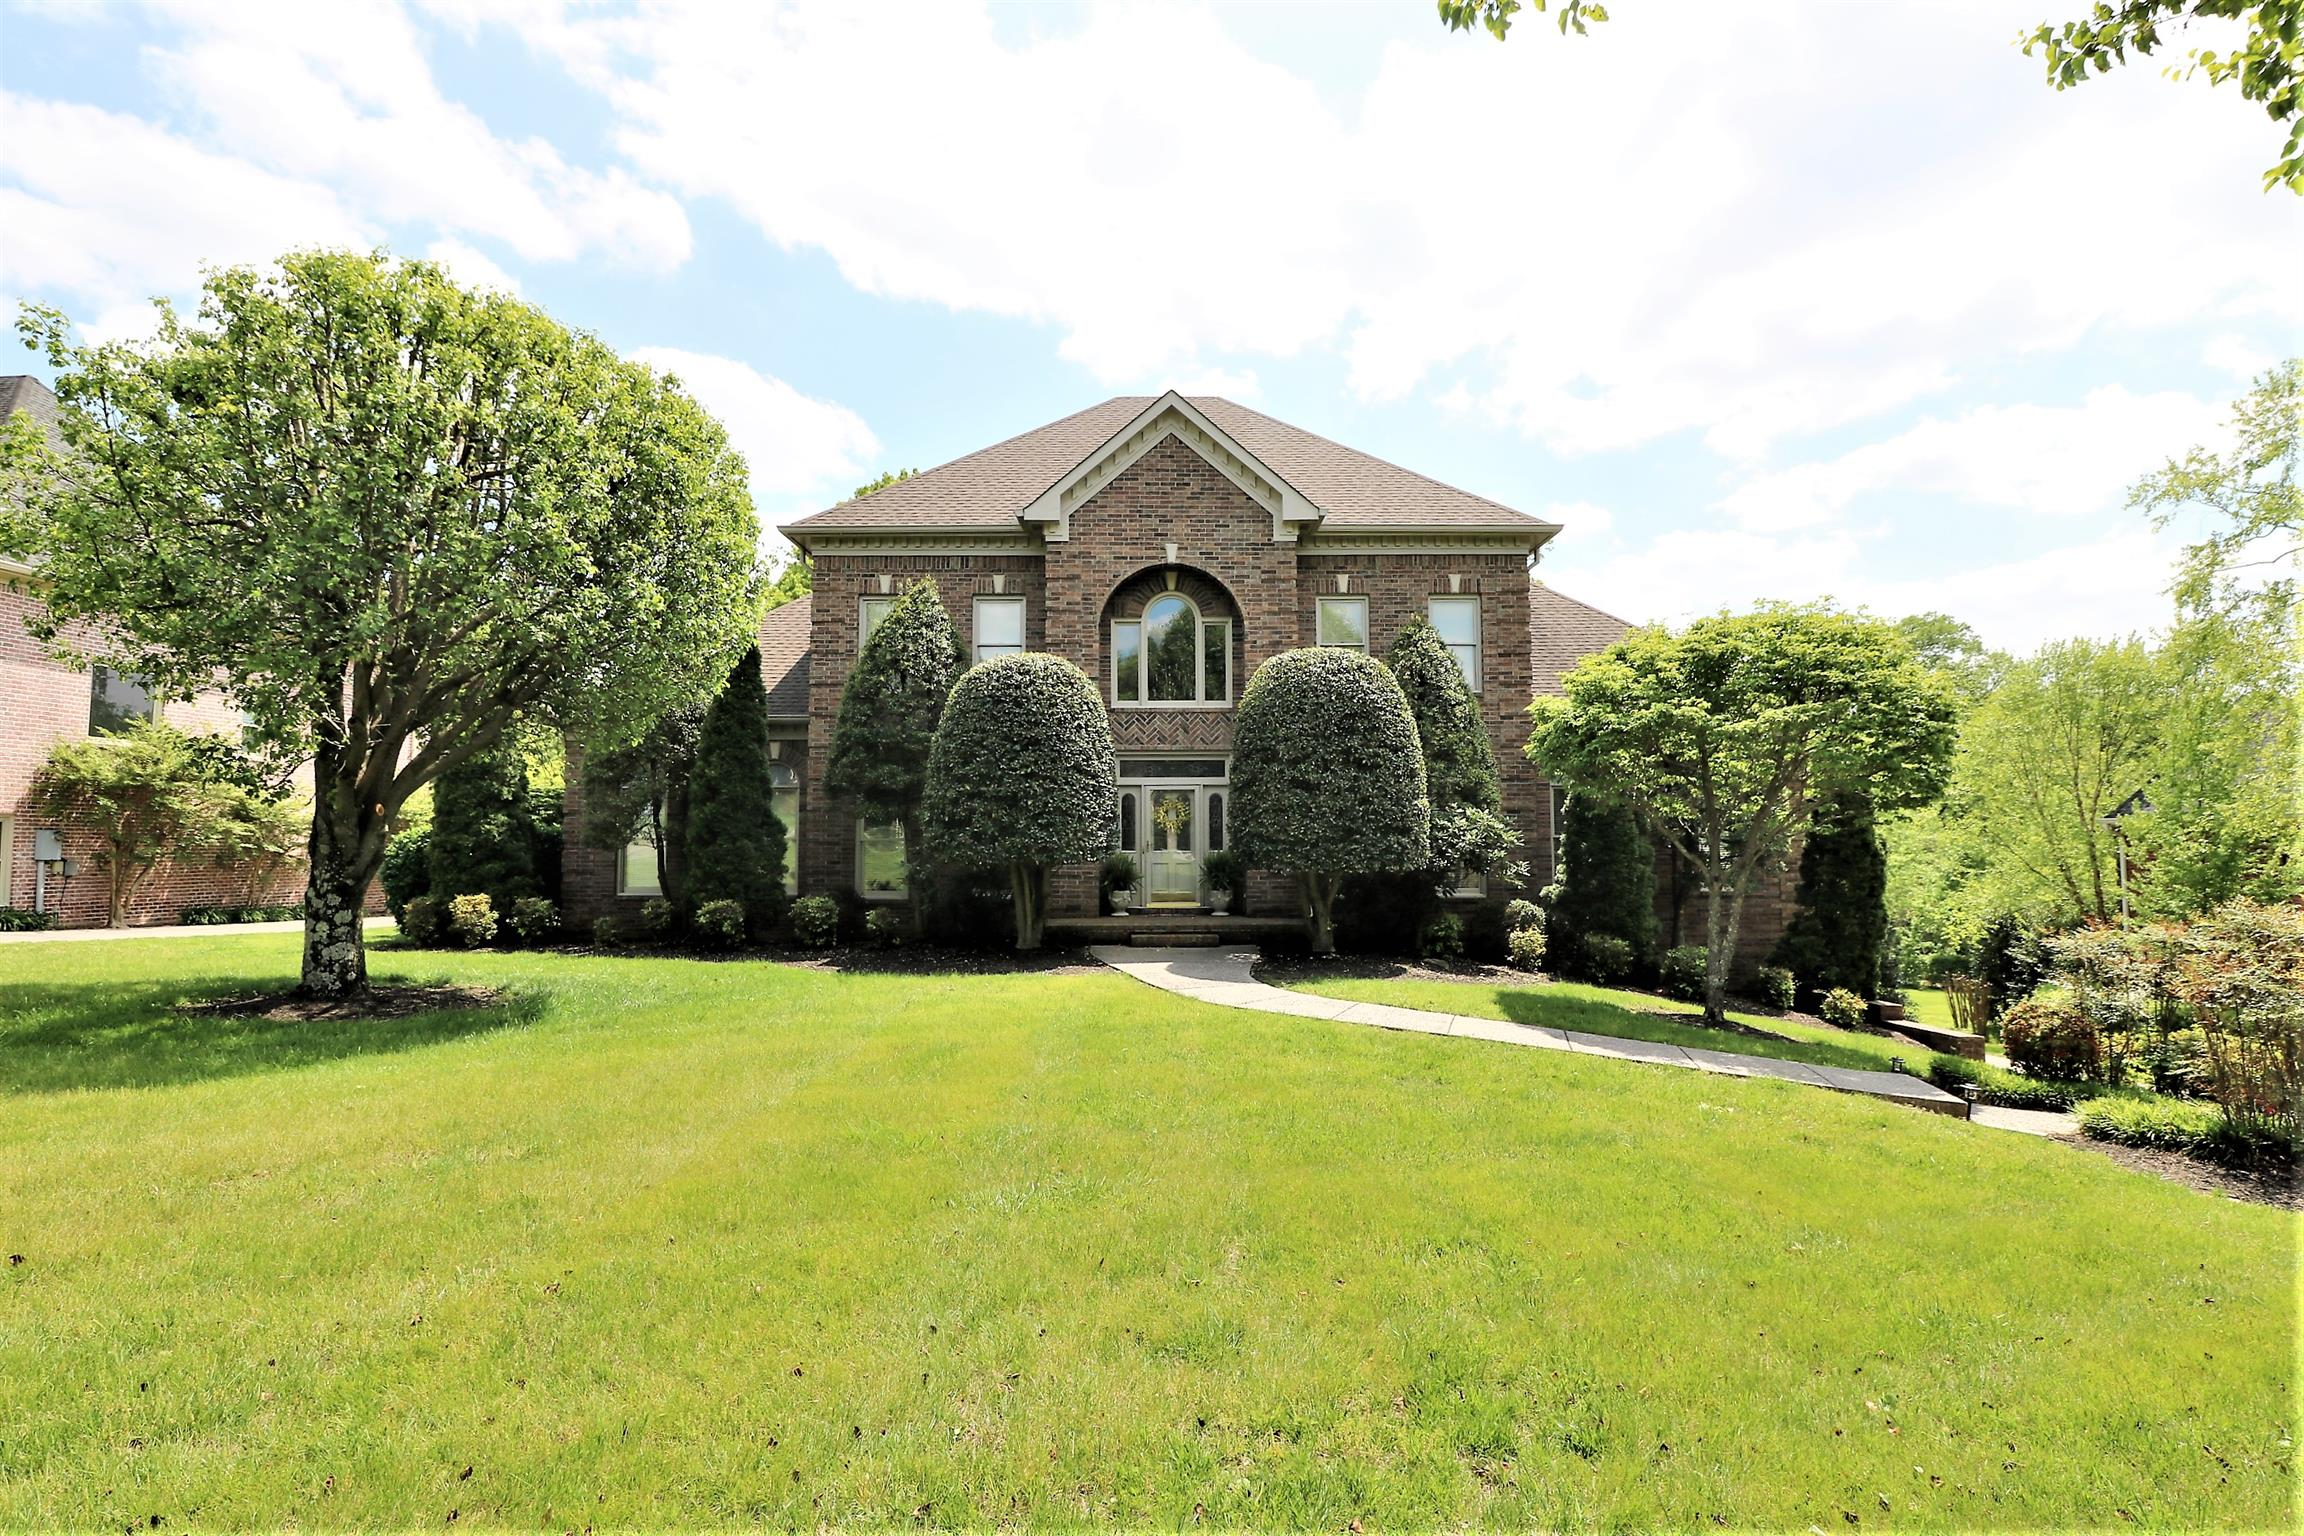 9483 Smithson Ln, Brentwood, Tennessee